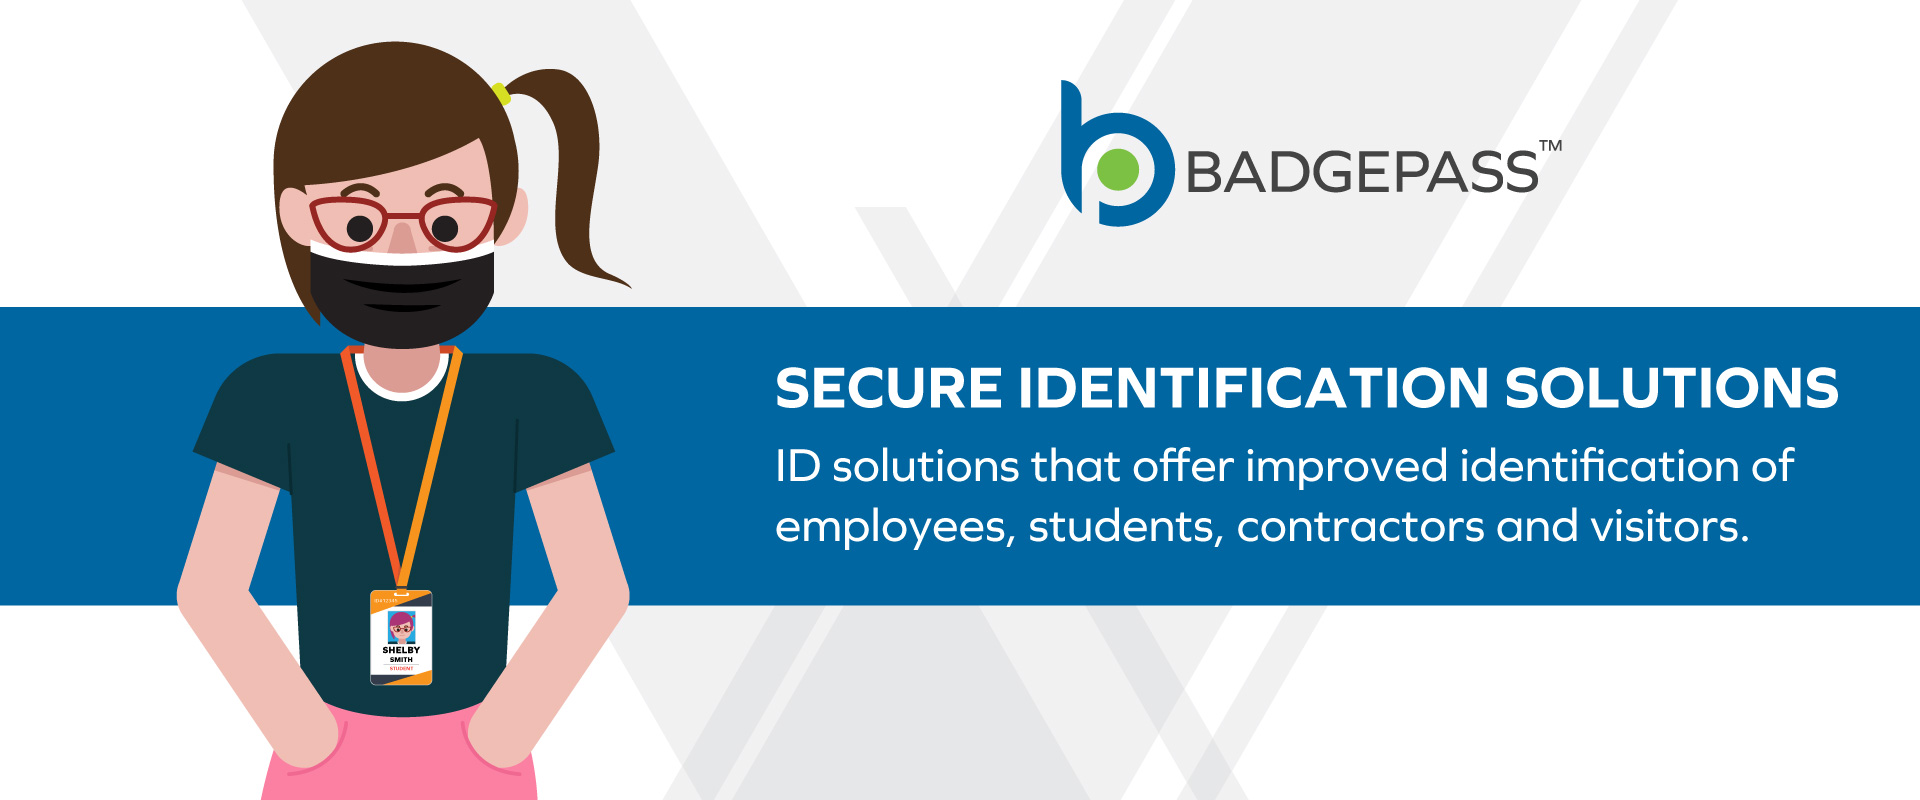 vector illustration of woman wearing a face mask on BadgePass themed template